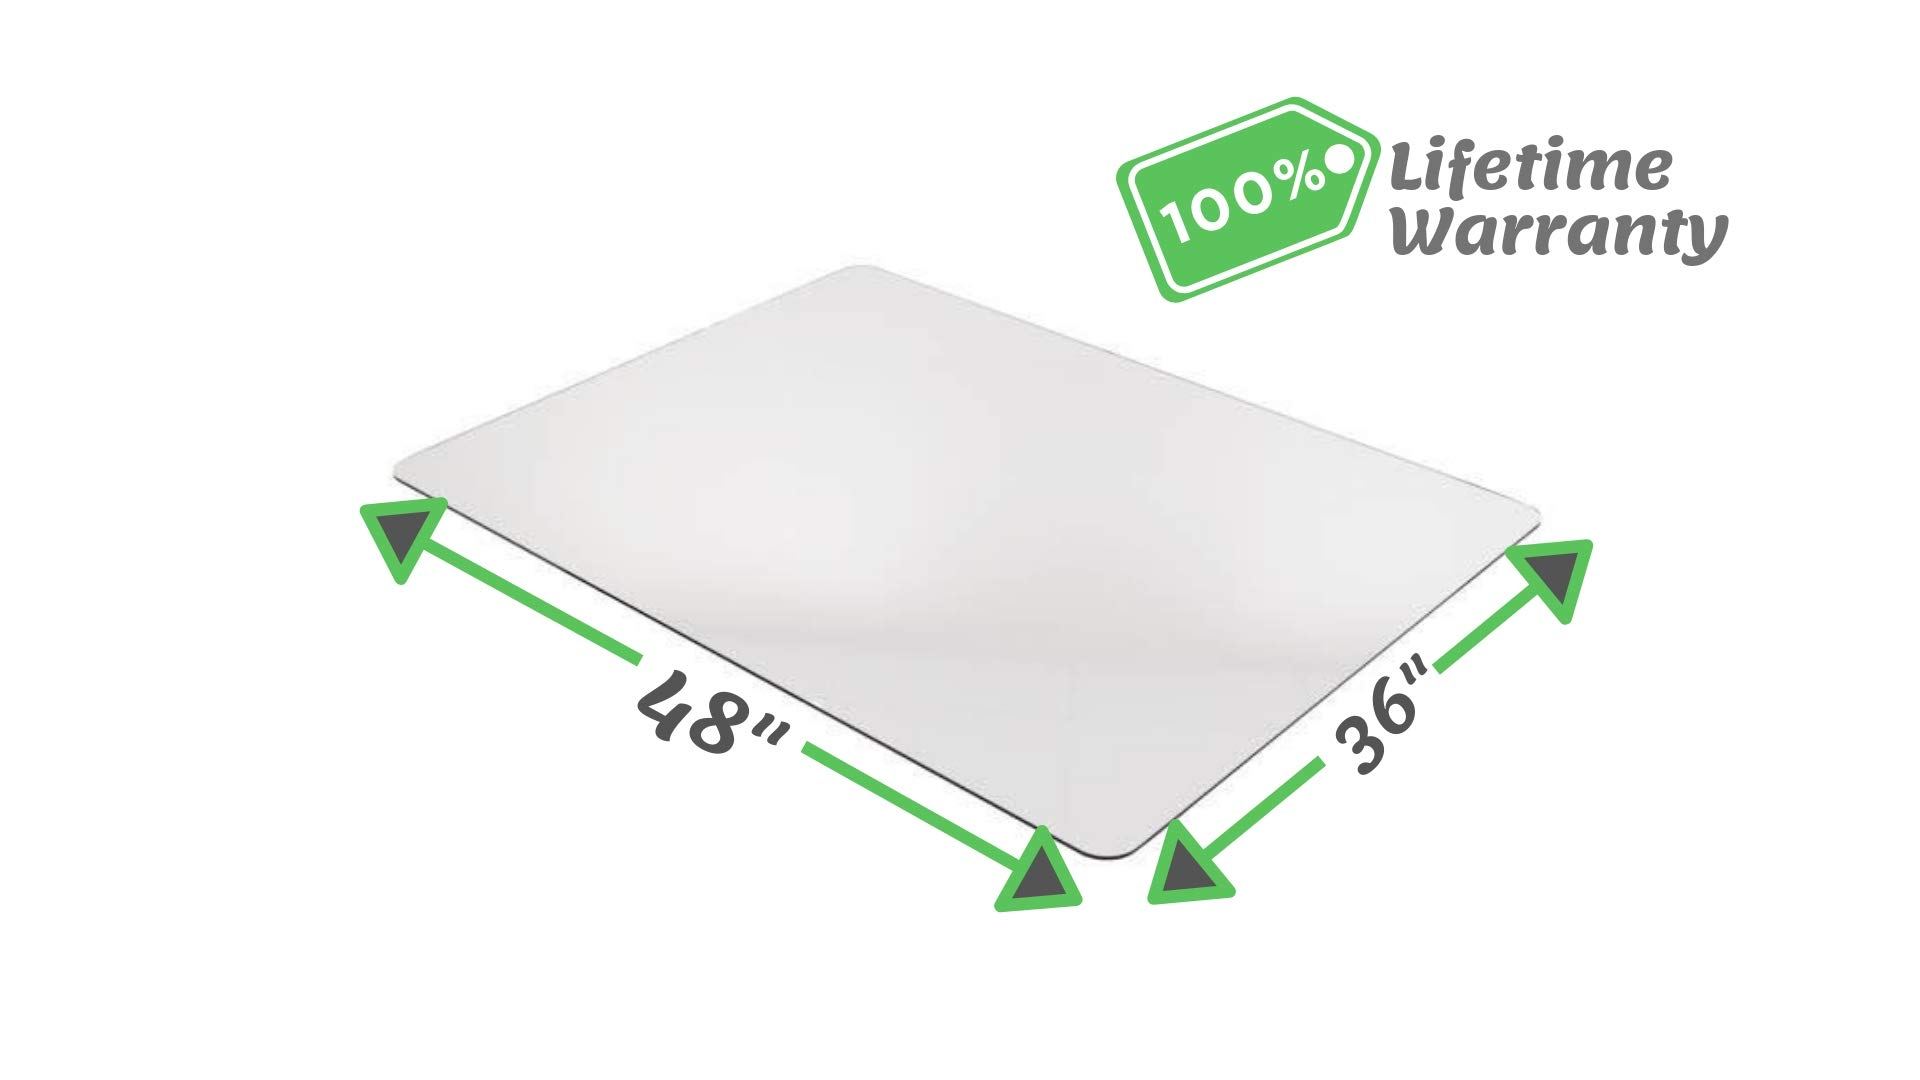 Matricks Office Chair Mat for Hard Floor | Multipurpose Floor Protector | Clear Polycarbonate Desk Chair Mat Perfect for Hardwood Floor | Guaranteed Long-Lasting Protection | 36'' x 48''